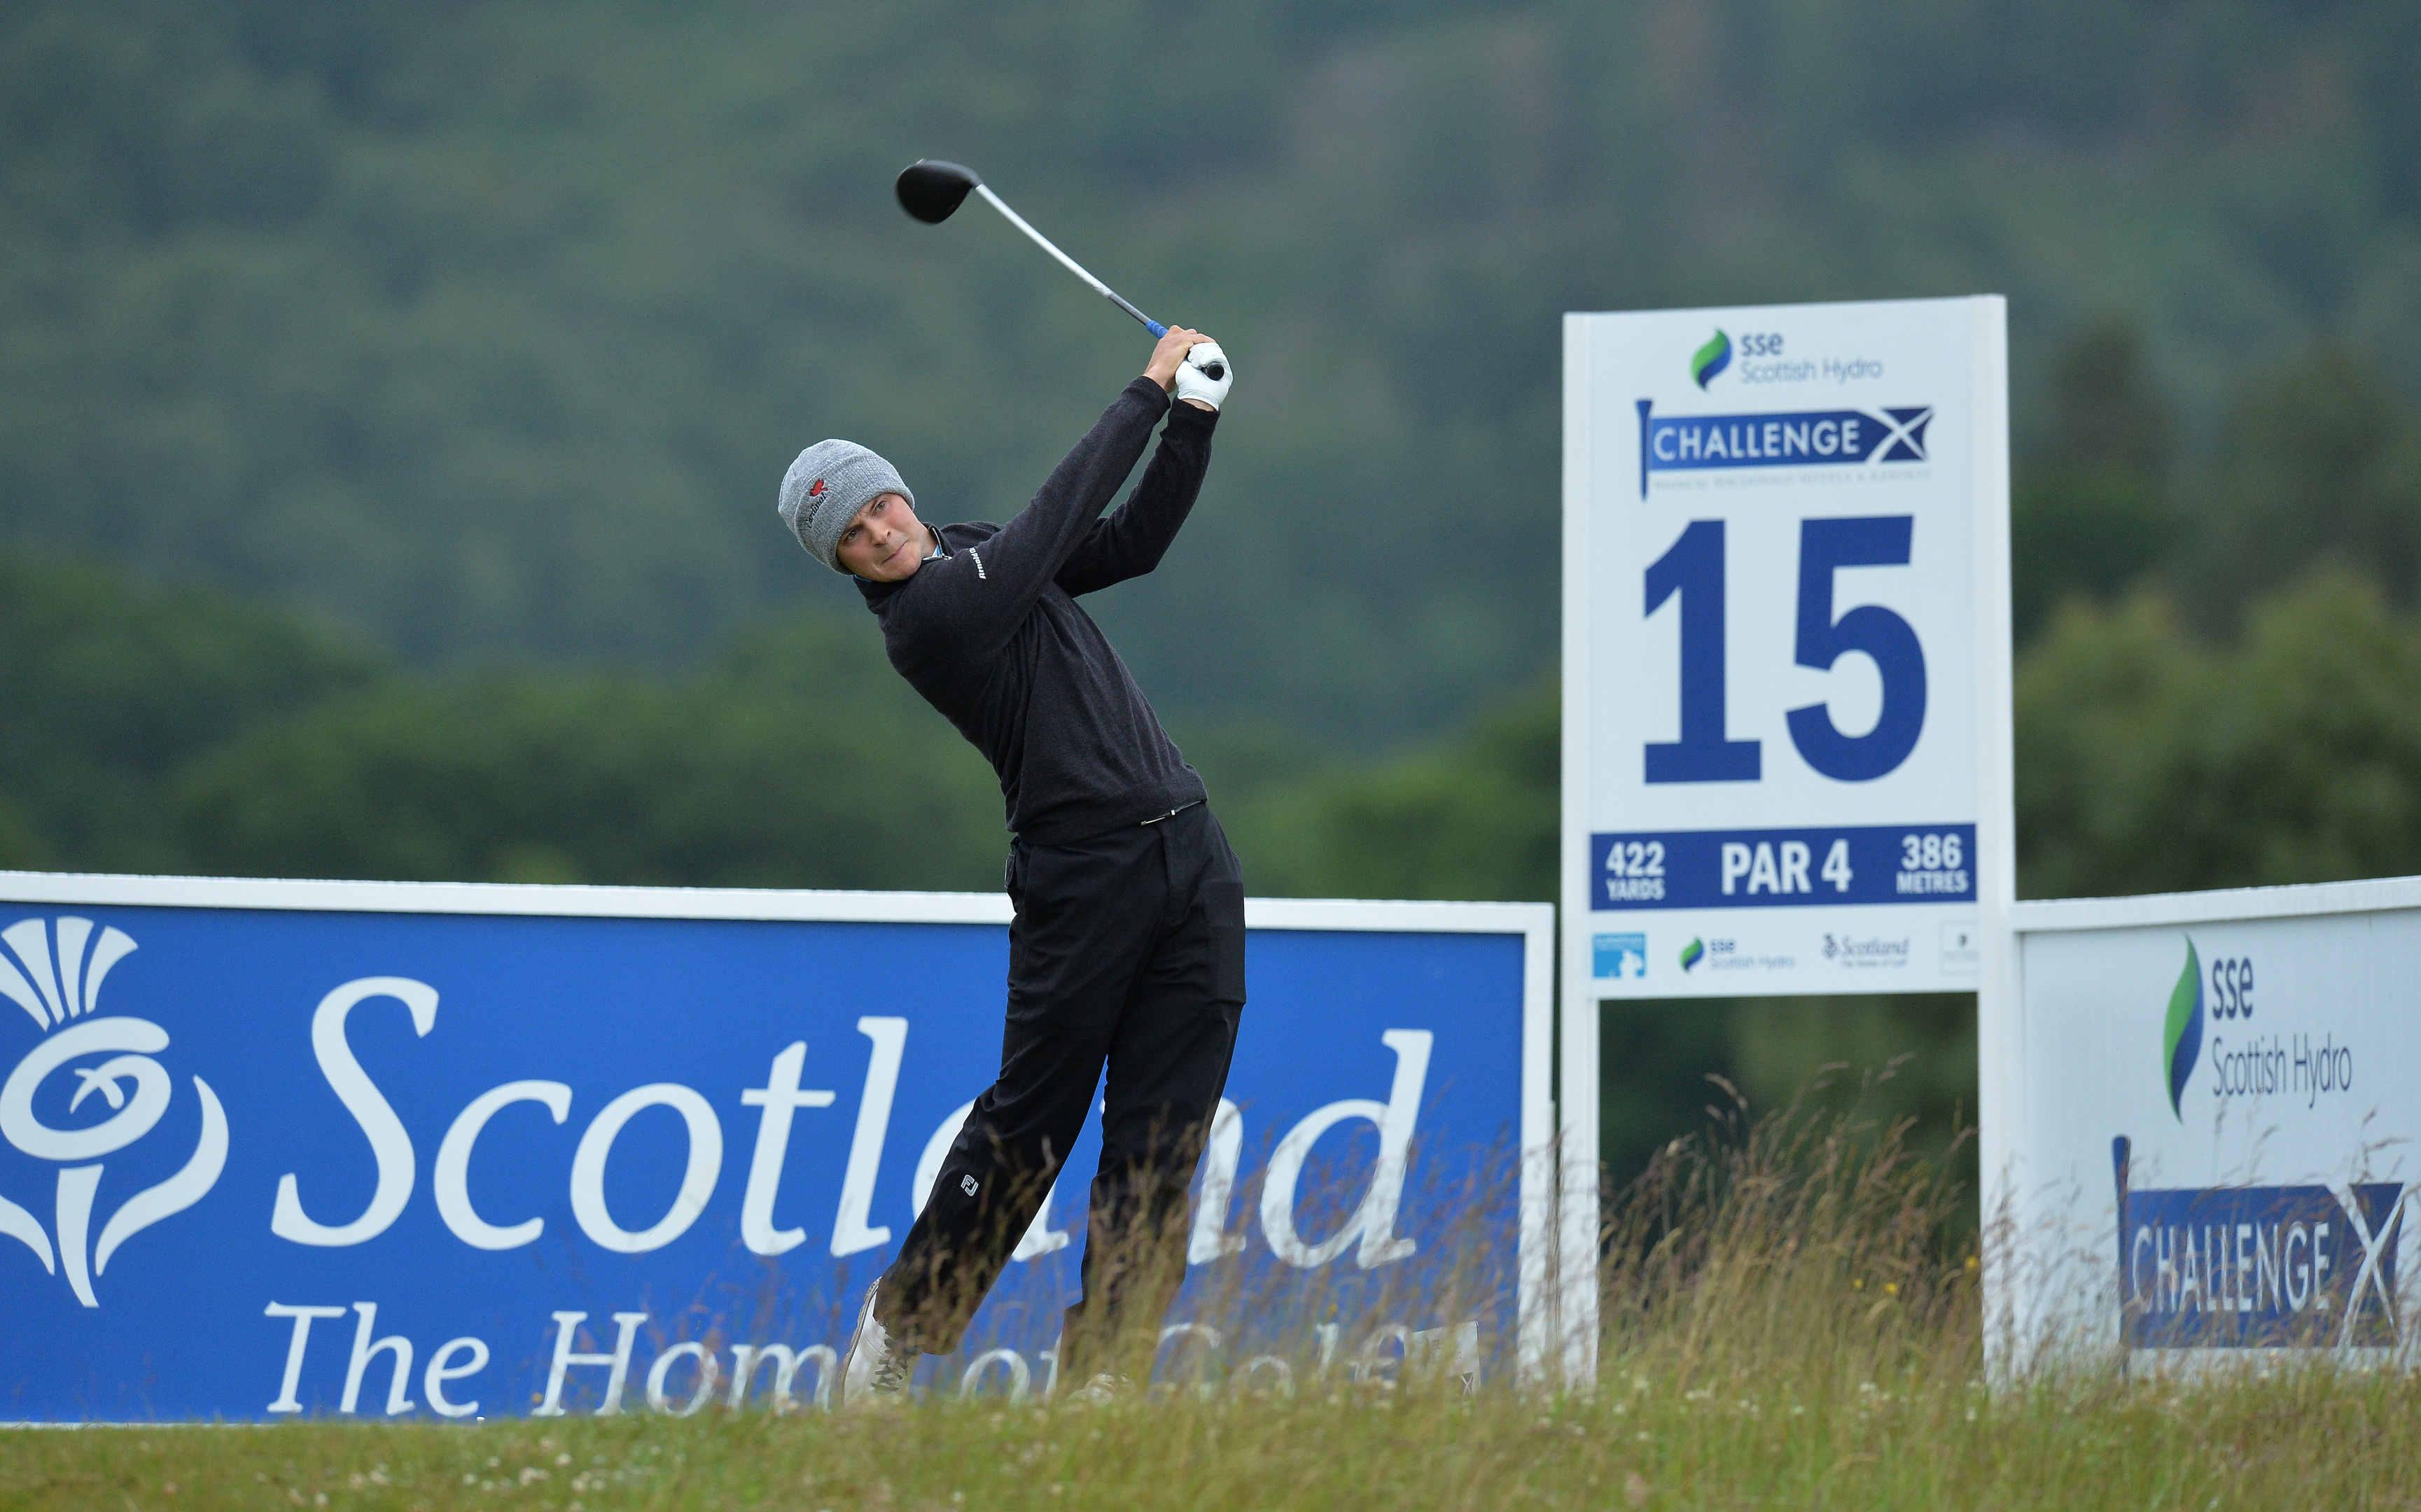 Jack McDonald shot a 66 to move into contention for the weekend at the SSE Scottish Hydro Challenge.